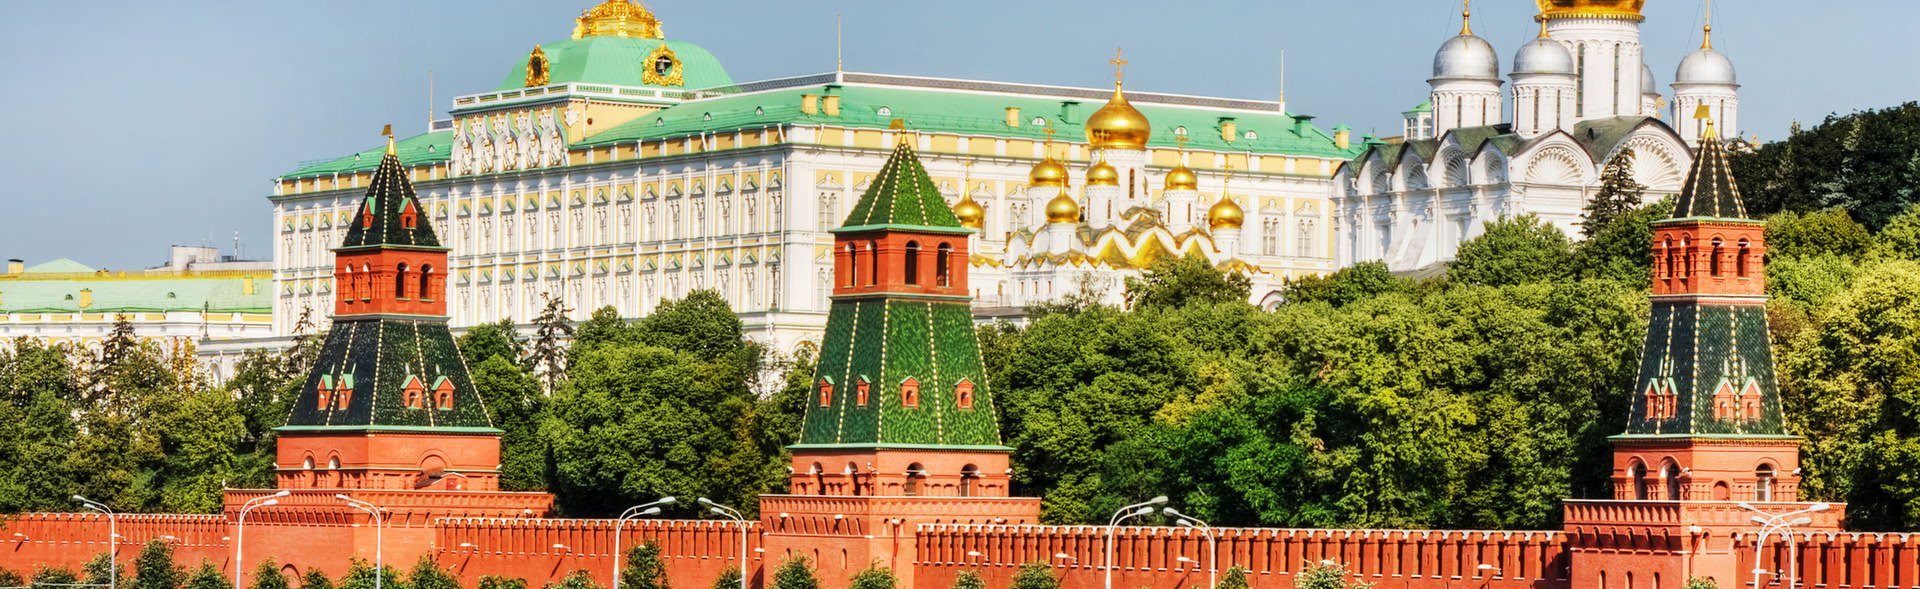 Visit Russia's most renowned icon - the red-brick Kremlin on your Moscow tour